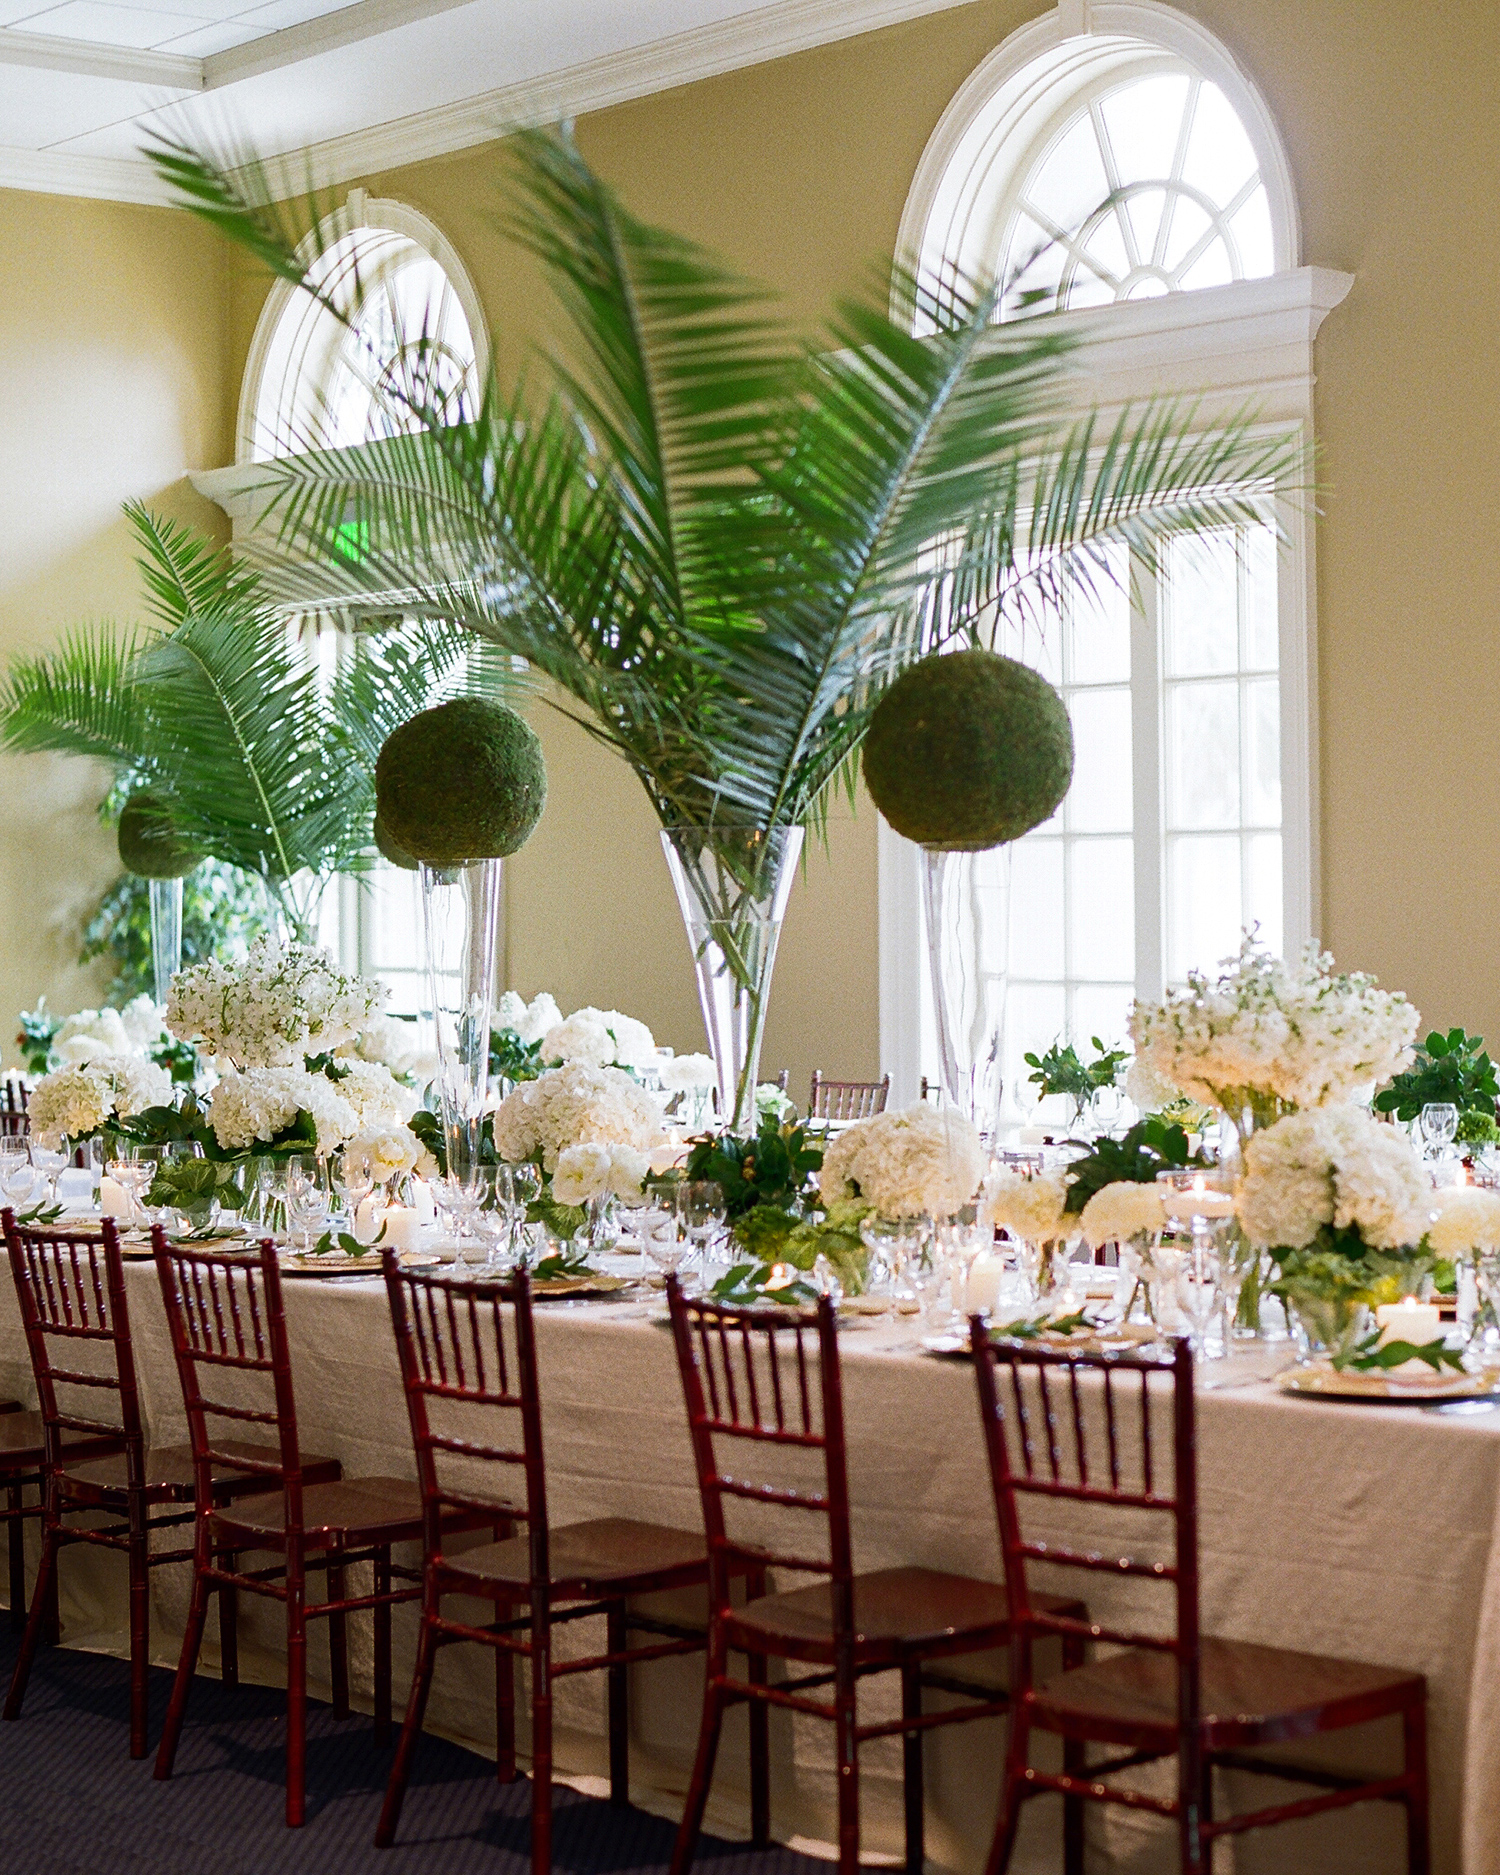 lindsay evan wedding banquet table and chairs